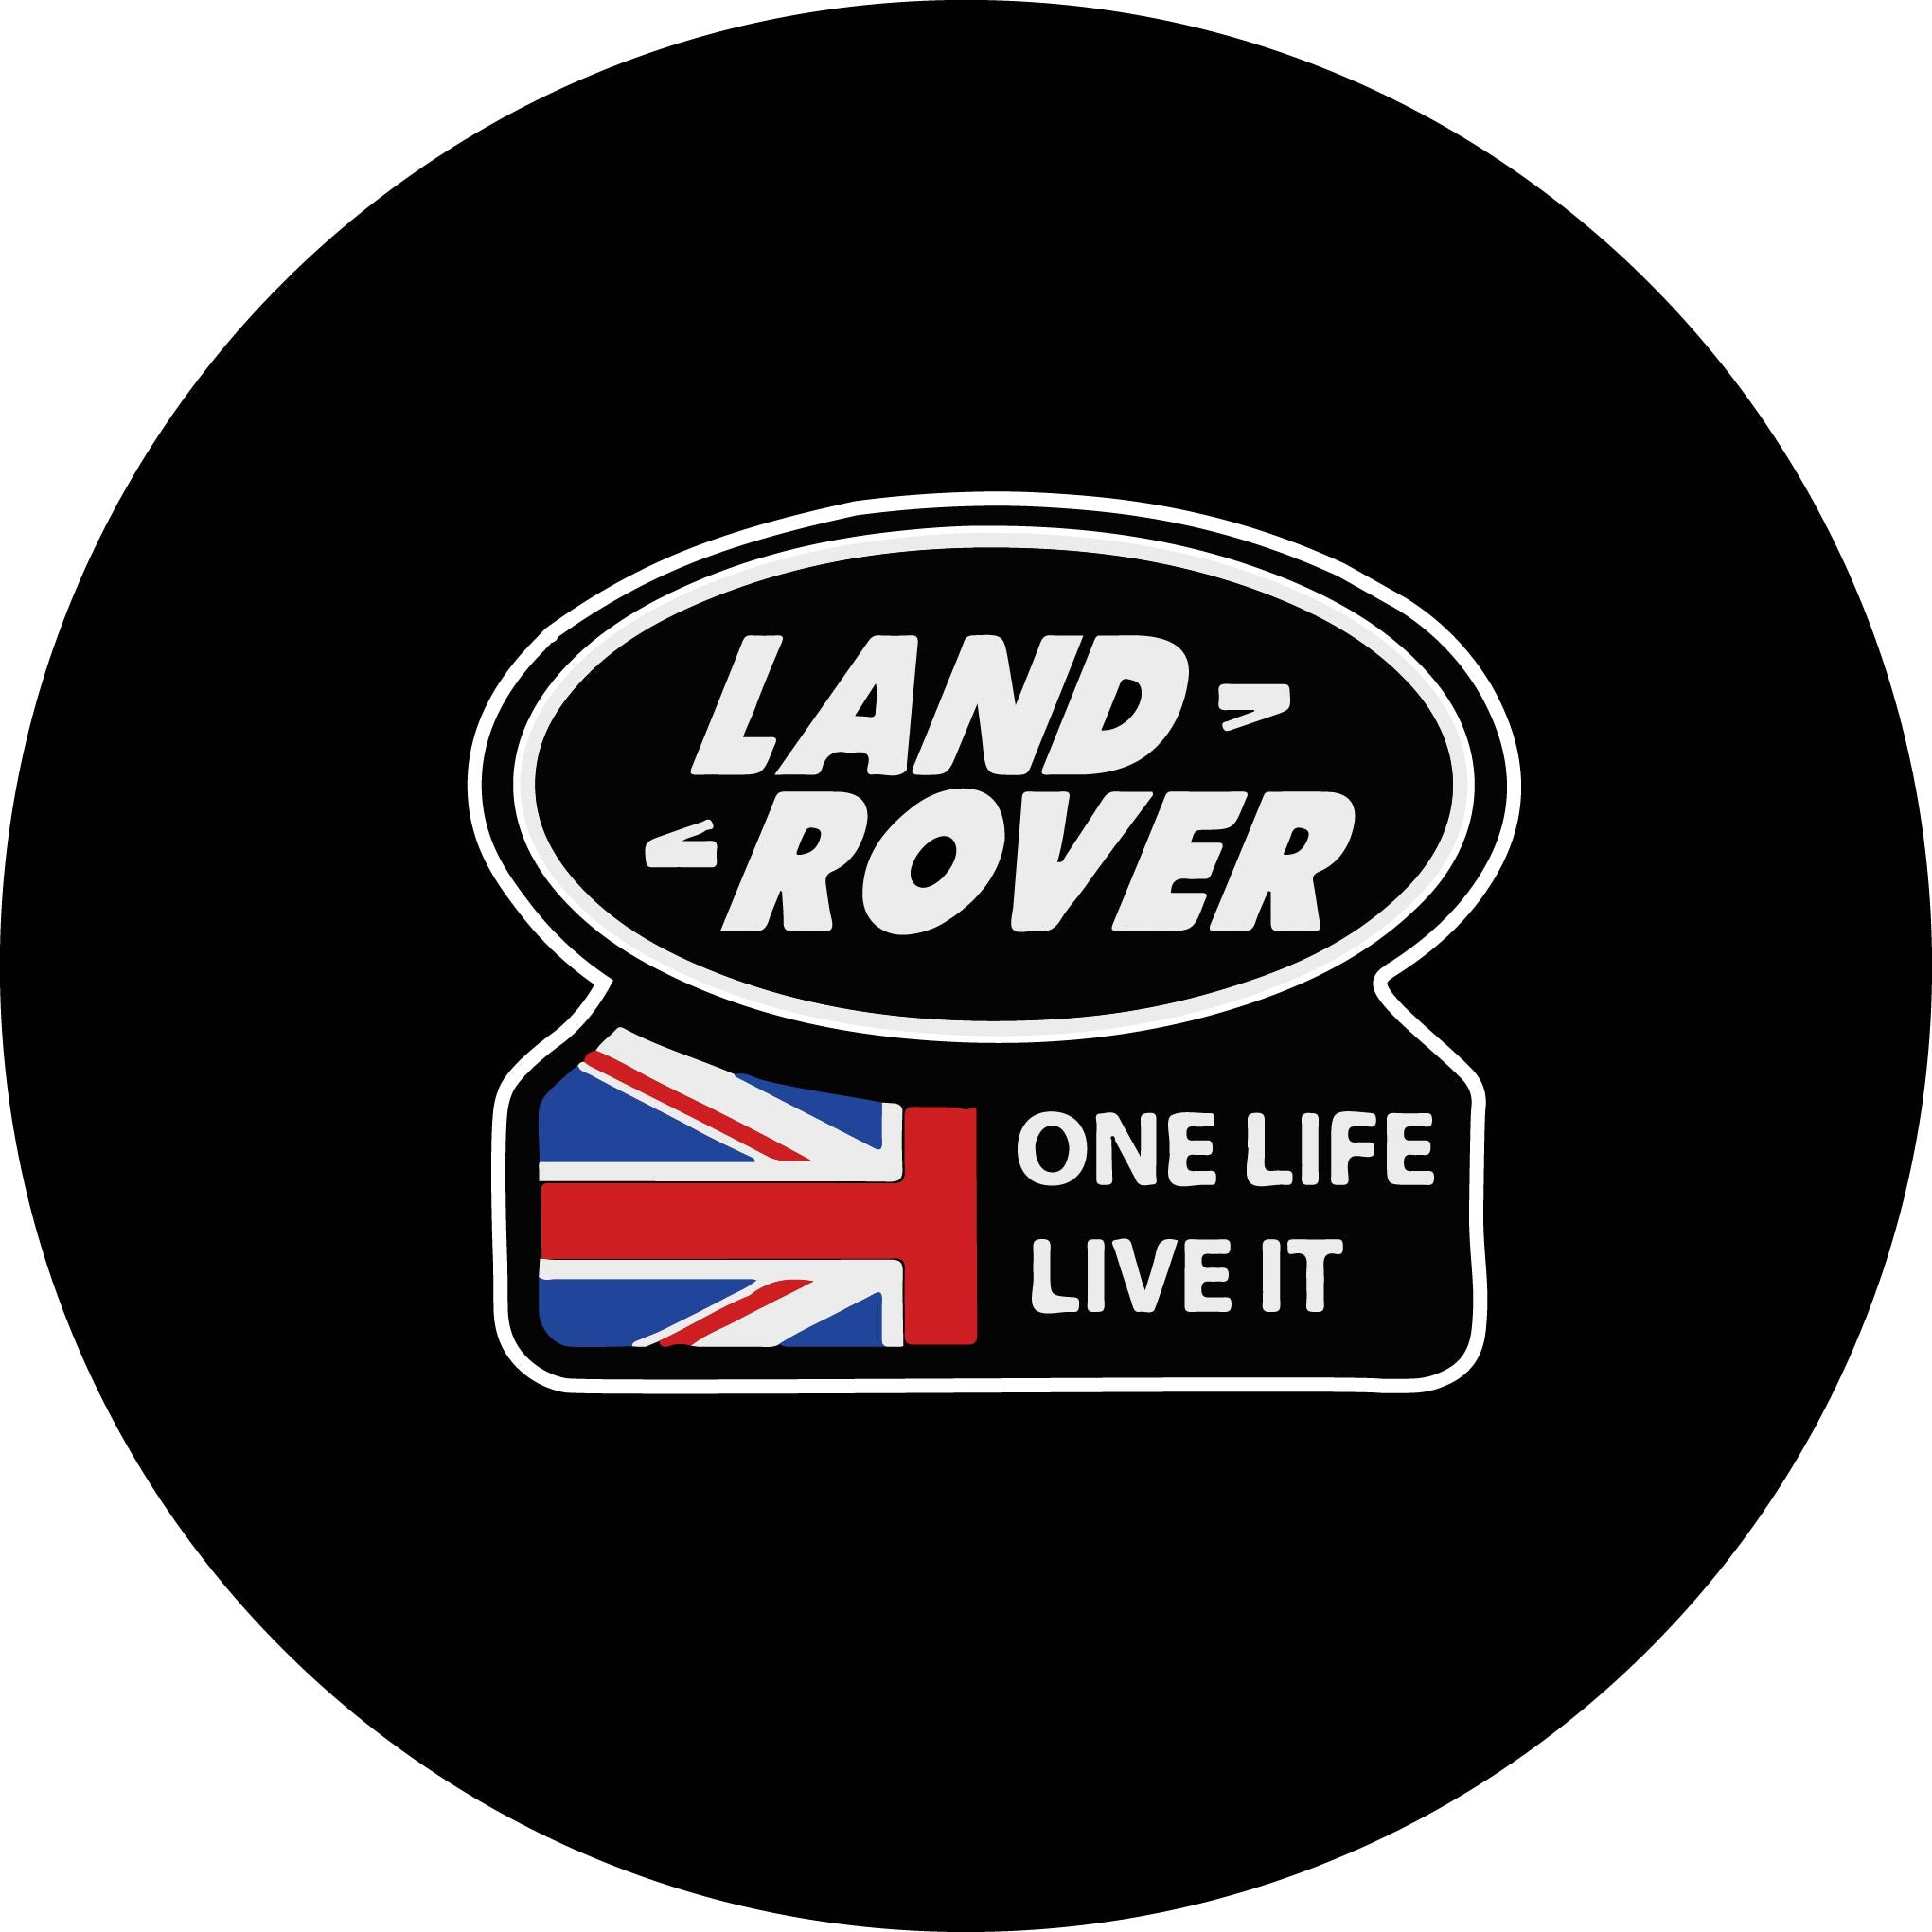 One Life, Live It Yazılı Land Rover Stepne Kılıfı